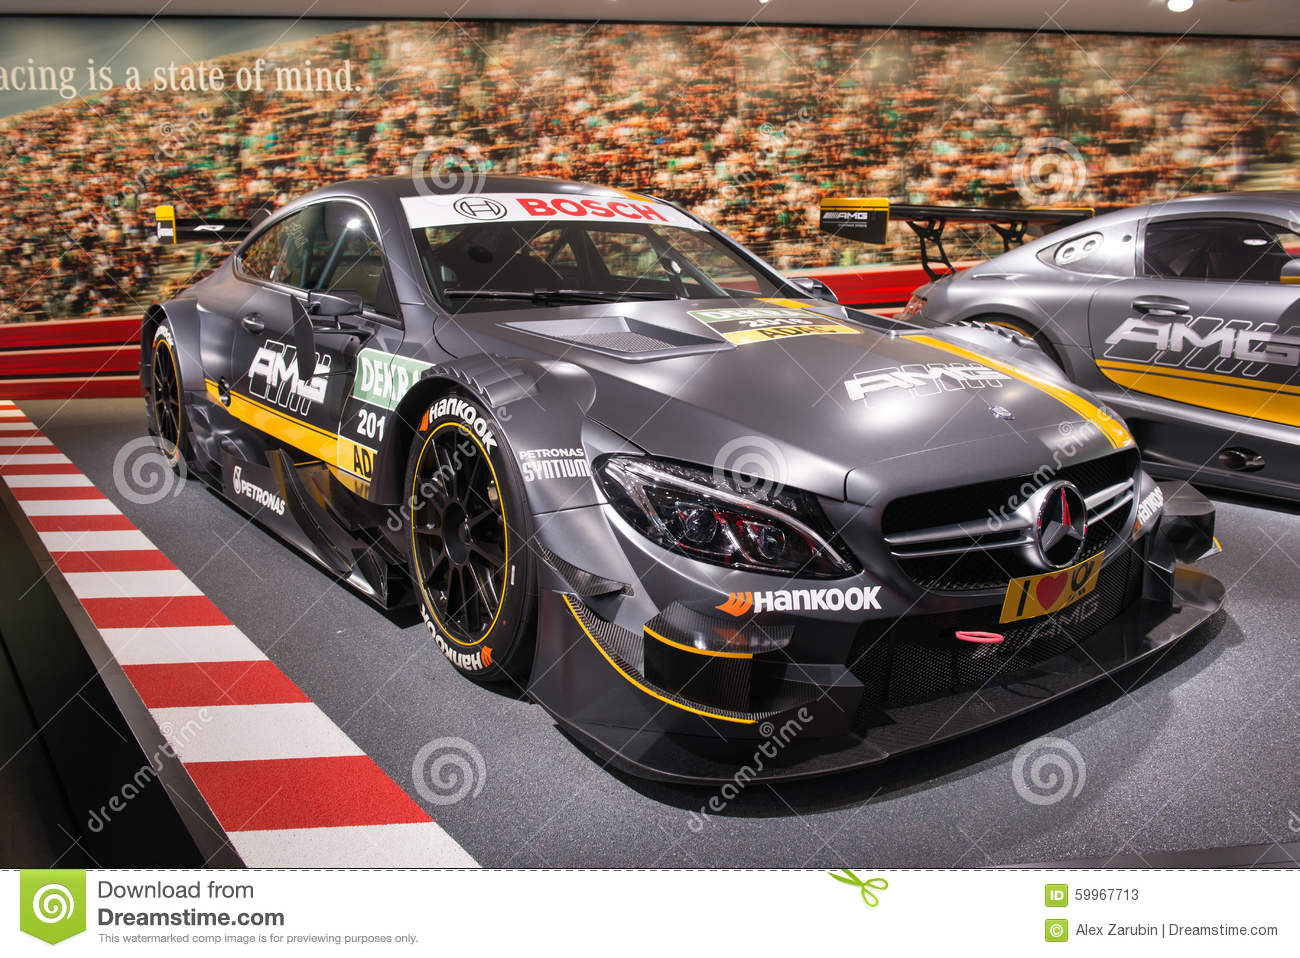 voiture de course de mercedes amg dtm photo stock ditorial image 59967713. Black Bedroom Furniture Sets. Home Design Ideas